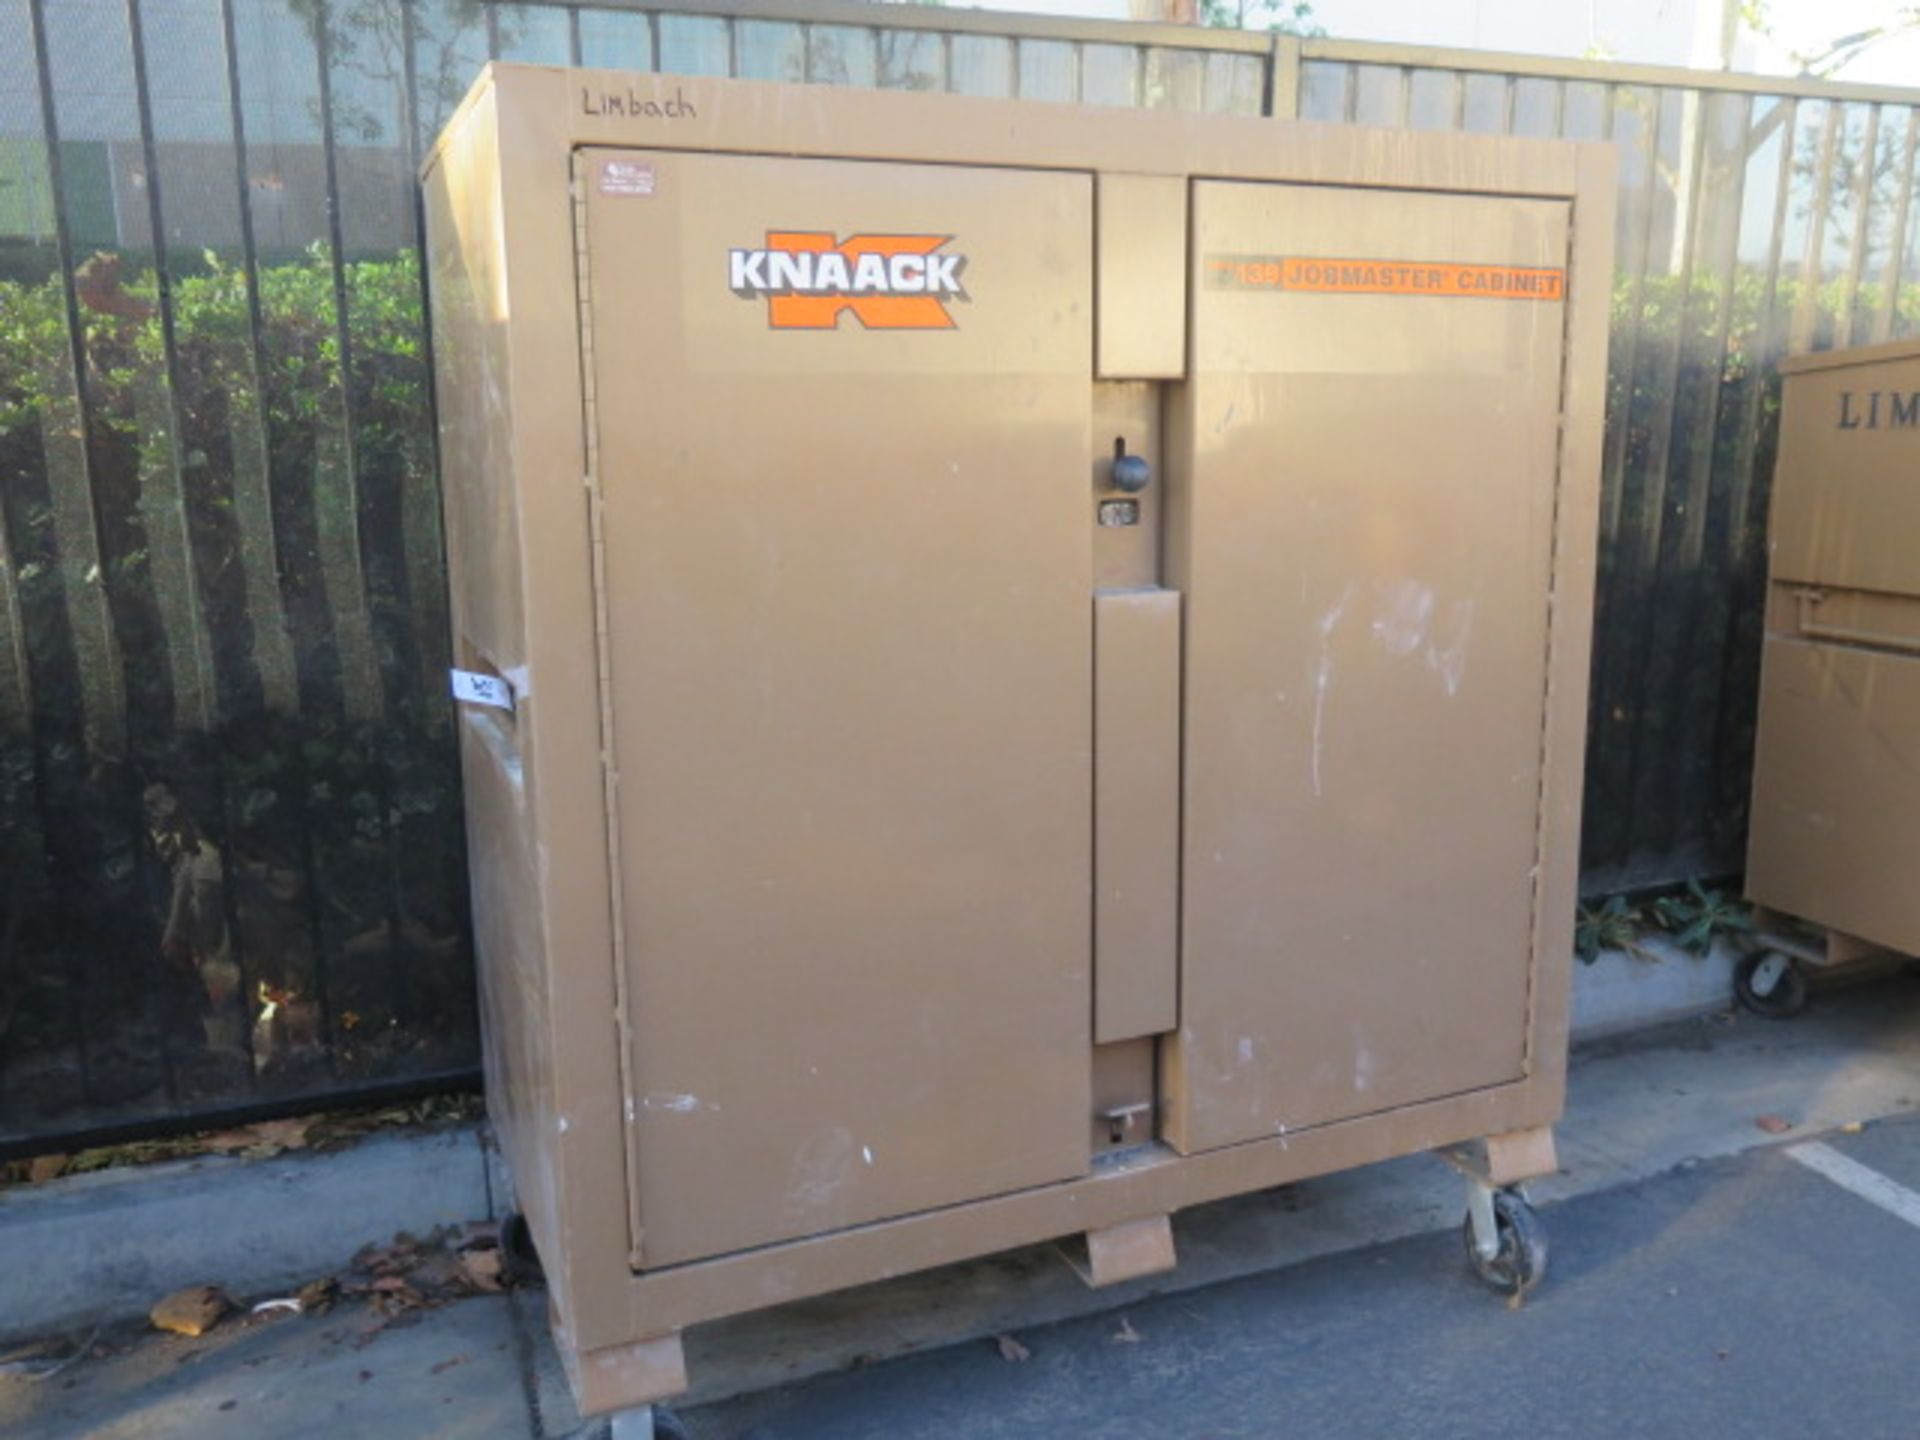 Knaack mdl. 139 Jobmaster Rolling Job Boxw/ Hardware and Supplies (SOLD AS-IS - NO WARRANTY)